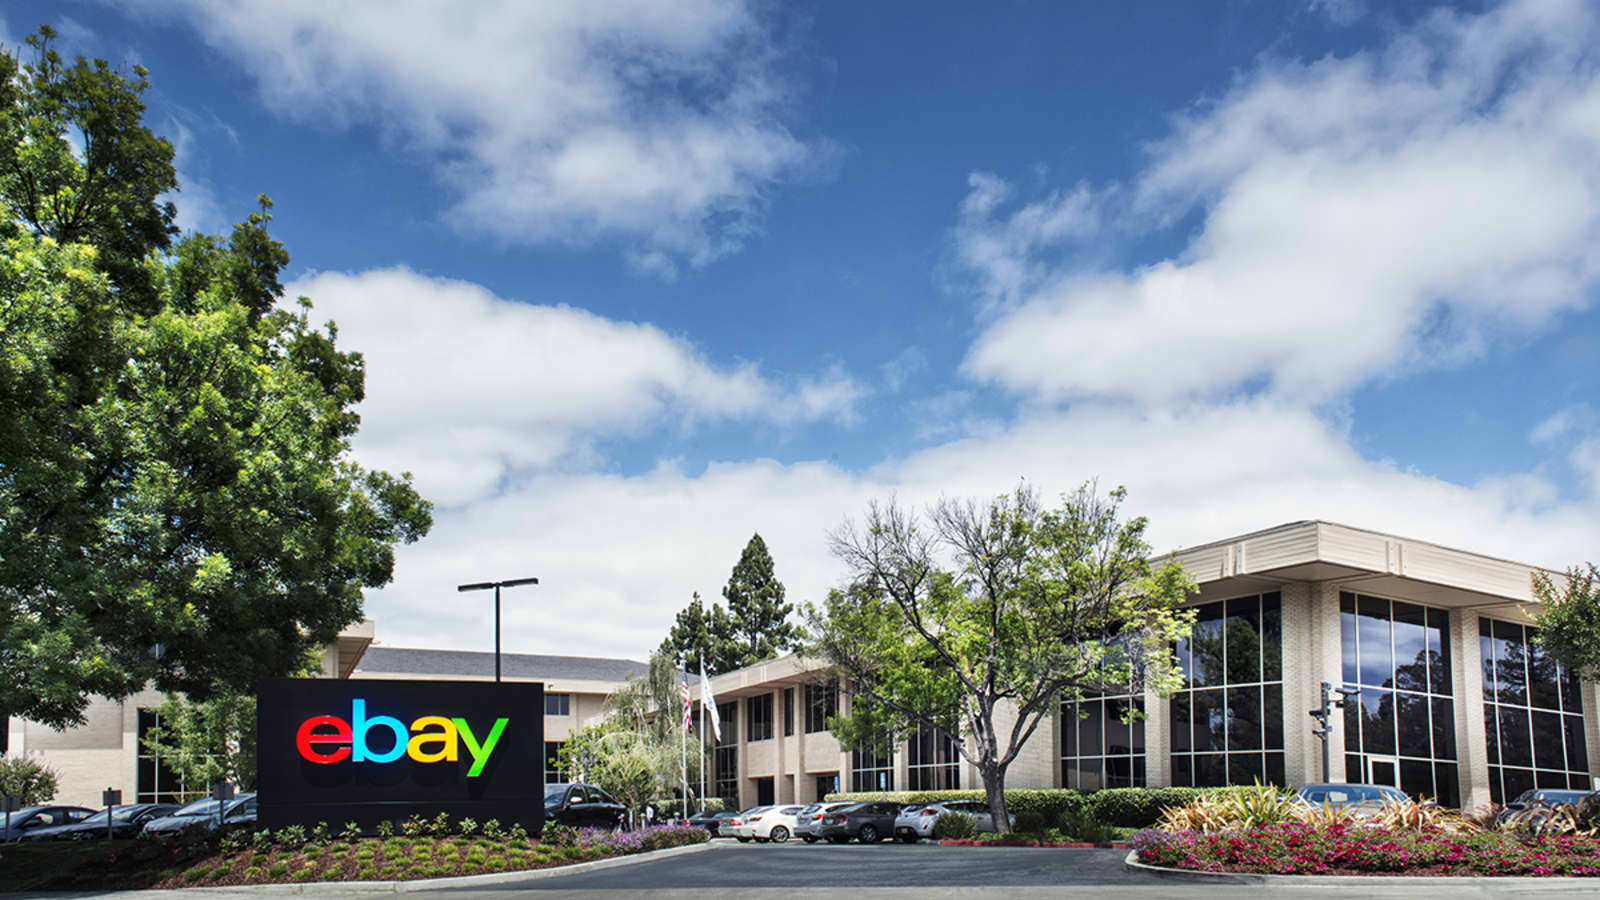 How Much A 1 000 Investment In Ebay 10 Years Ago Would Be Worth